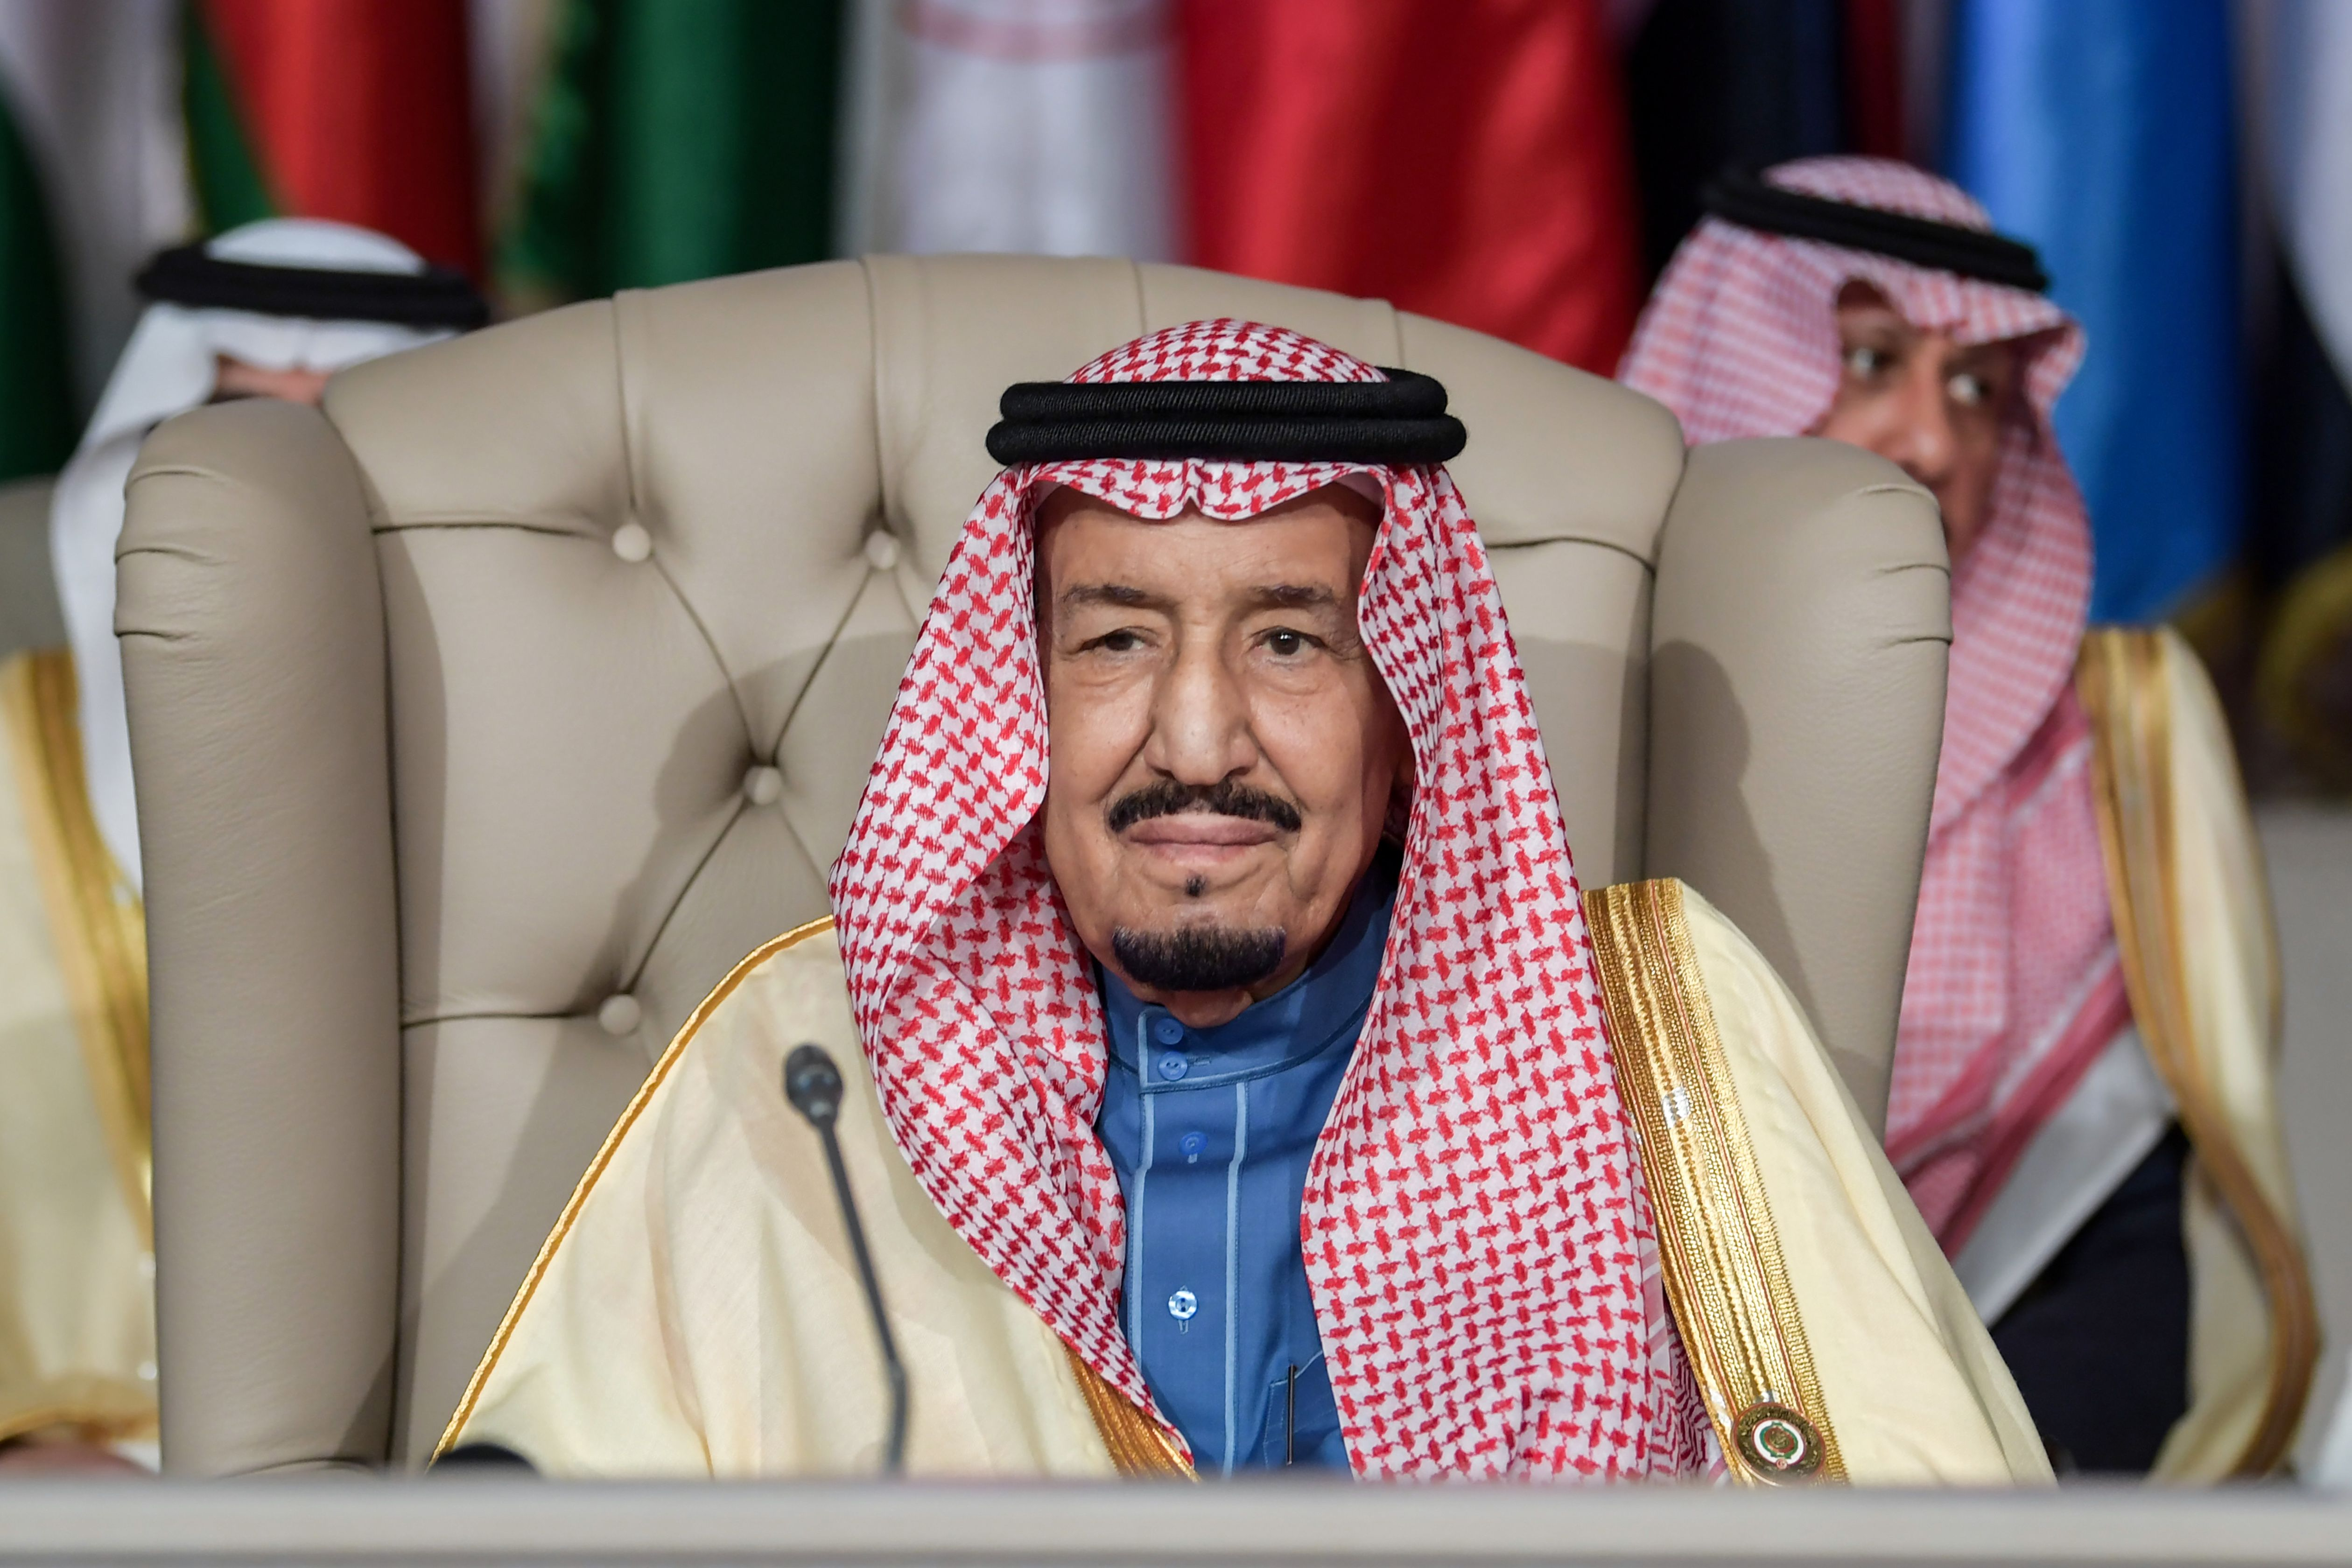 Saudi Arabia's King Salman bin Abdulaziz (C) chairs the opening session of the 30th Arab League summit in the Tunisian capital Tunis on March 31, 2019. (FETHI BELAID/AFP/Getty Images)